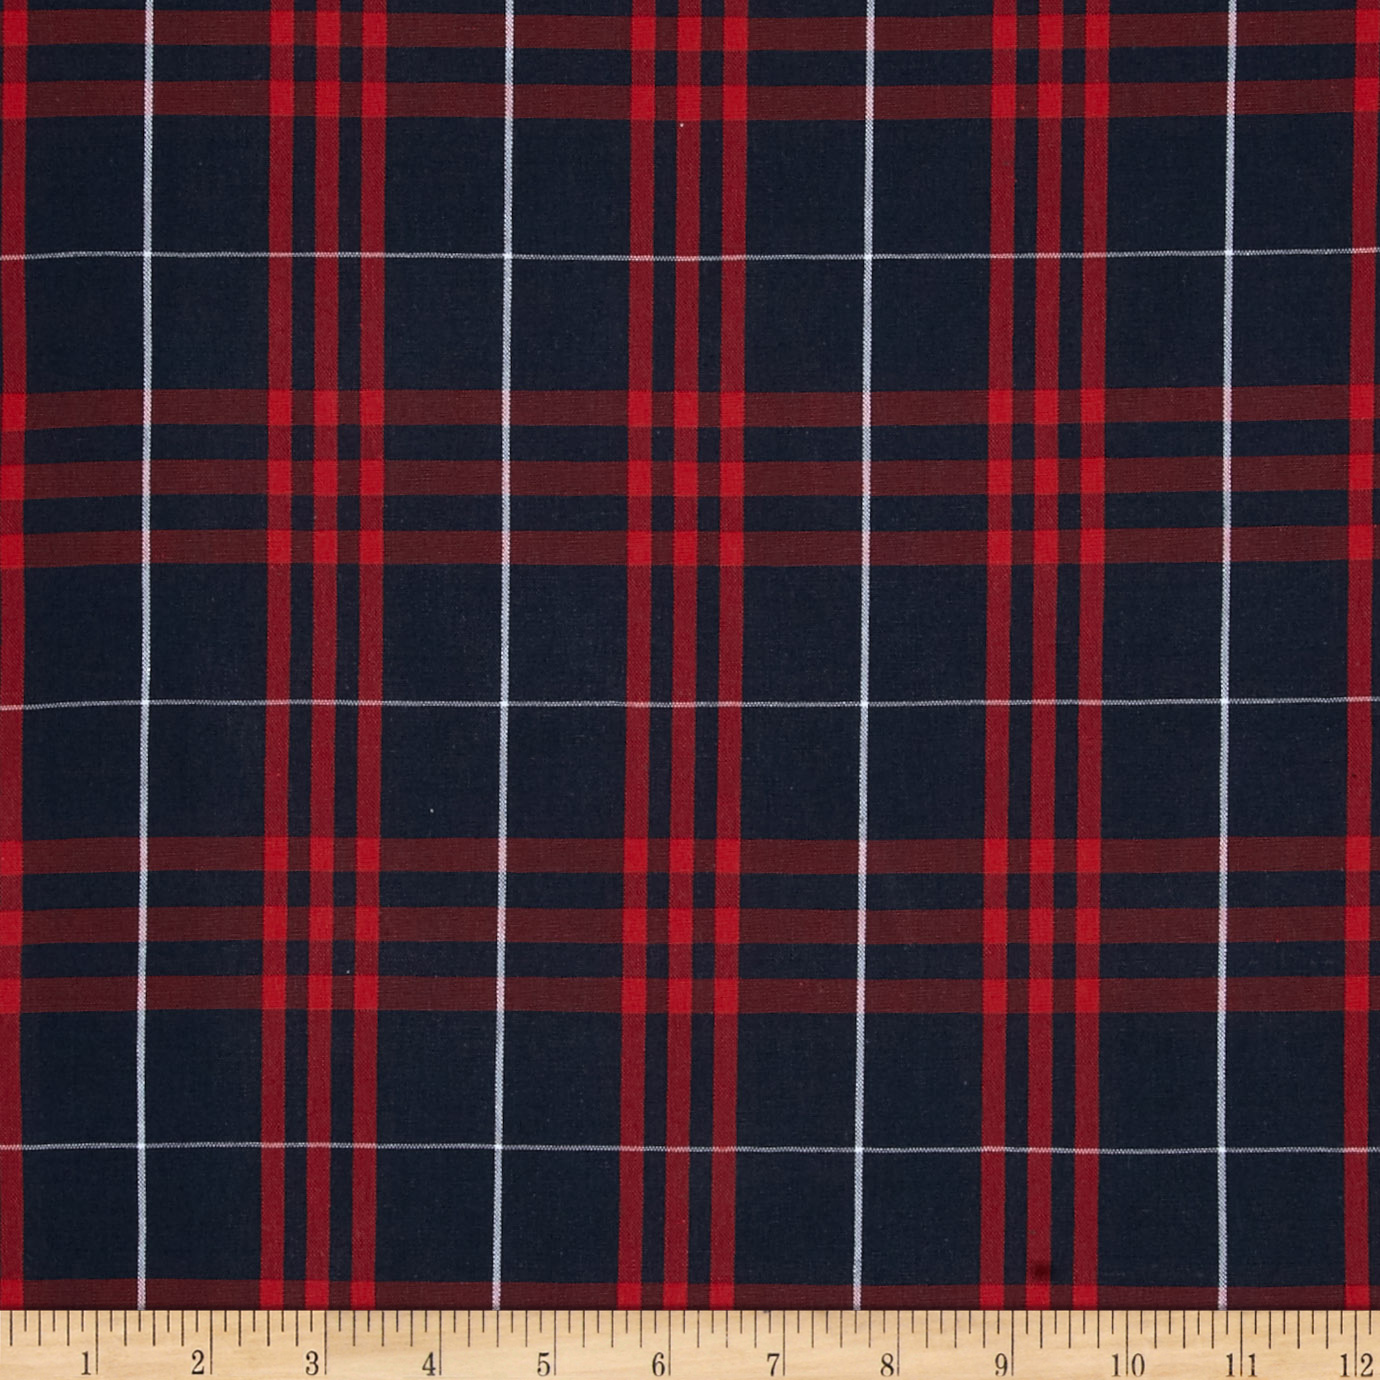 Poly/Cotton Uniform Plaid Navy/Red/White Fabric by Carr in USA